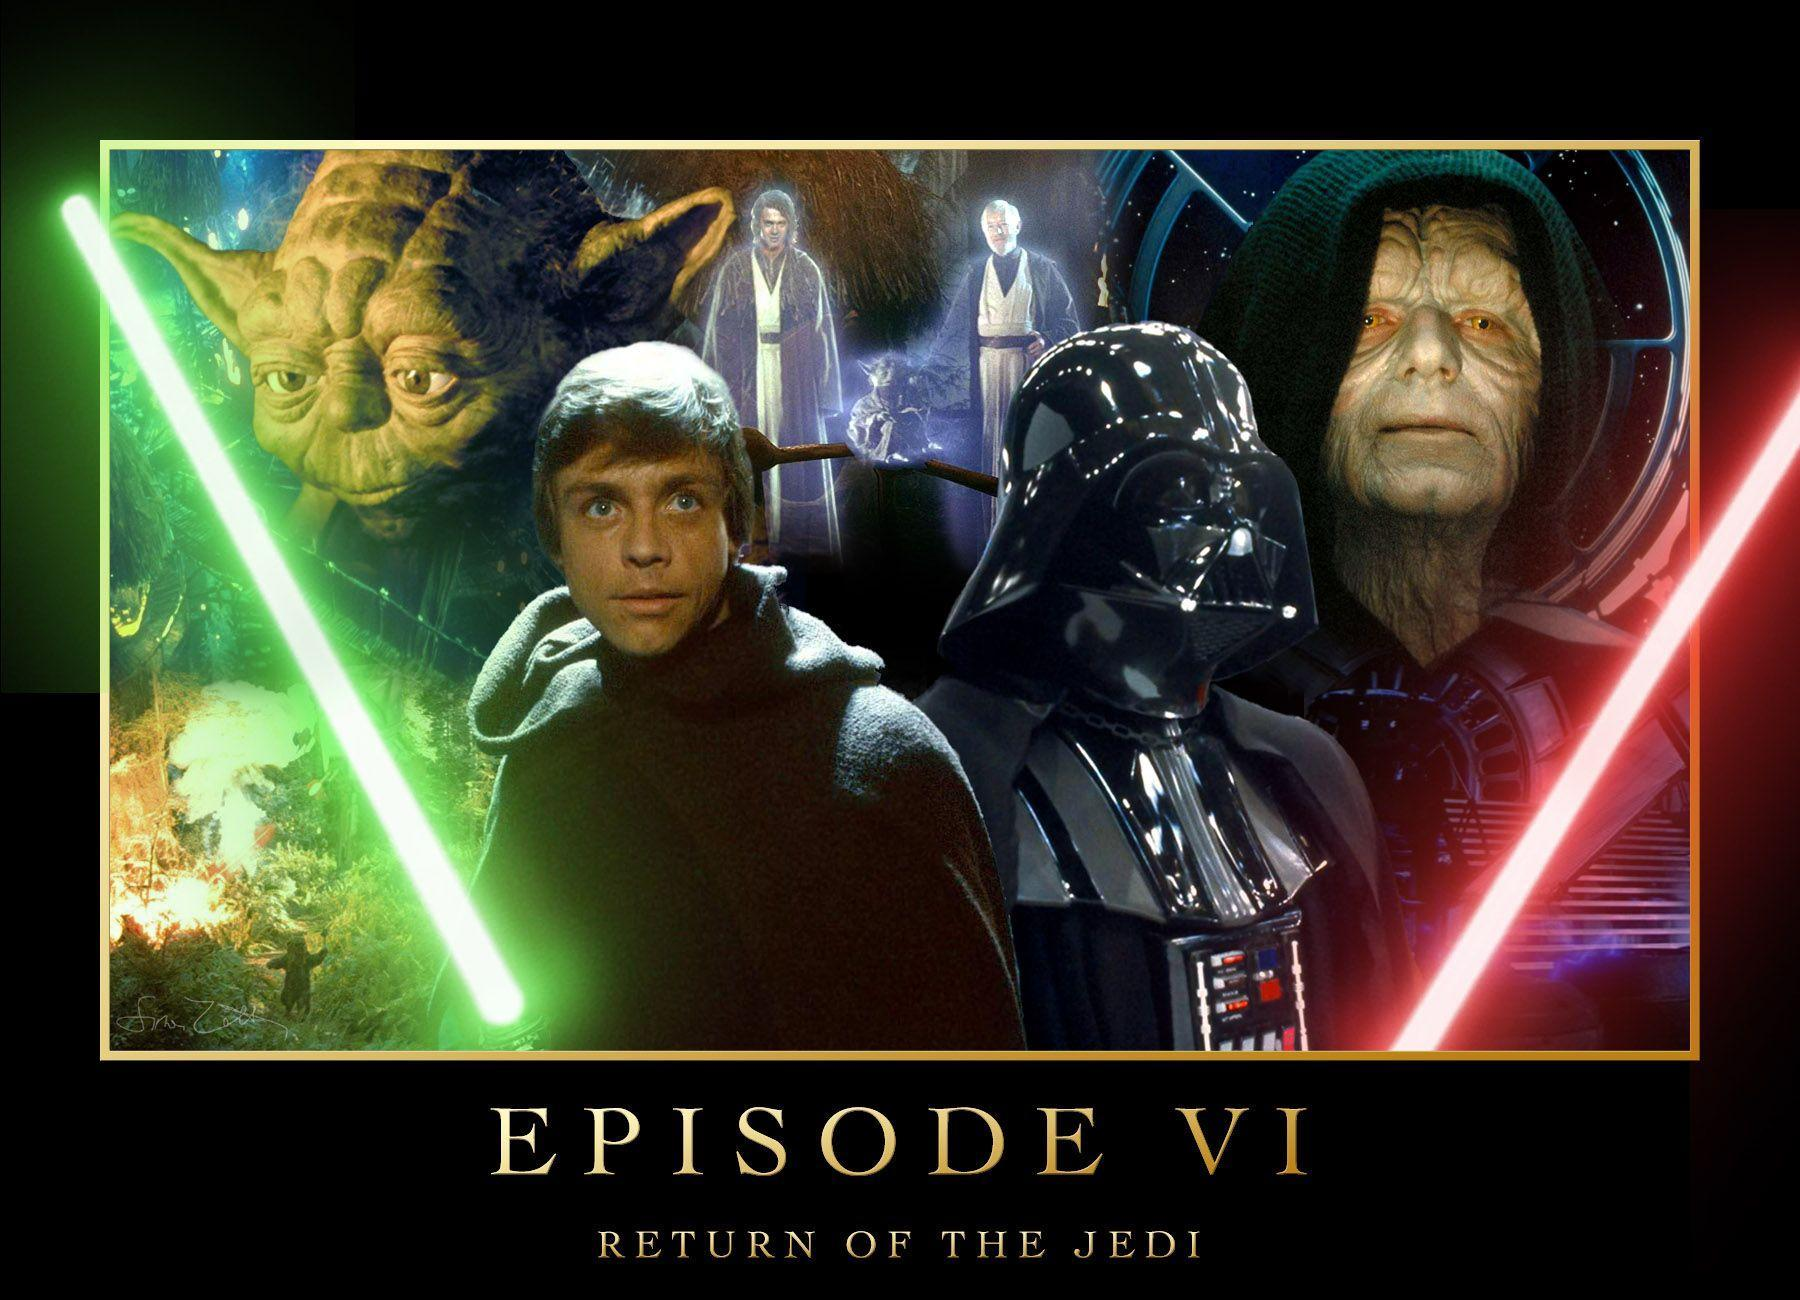 14 Star Wars Episode VI: Return Of The Jedi Wallpapers | Star Wars ...